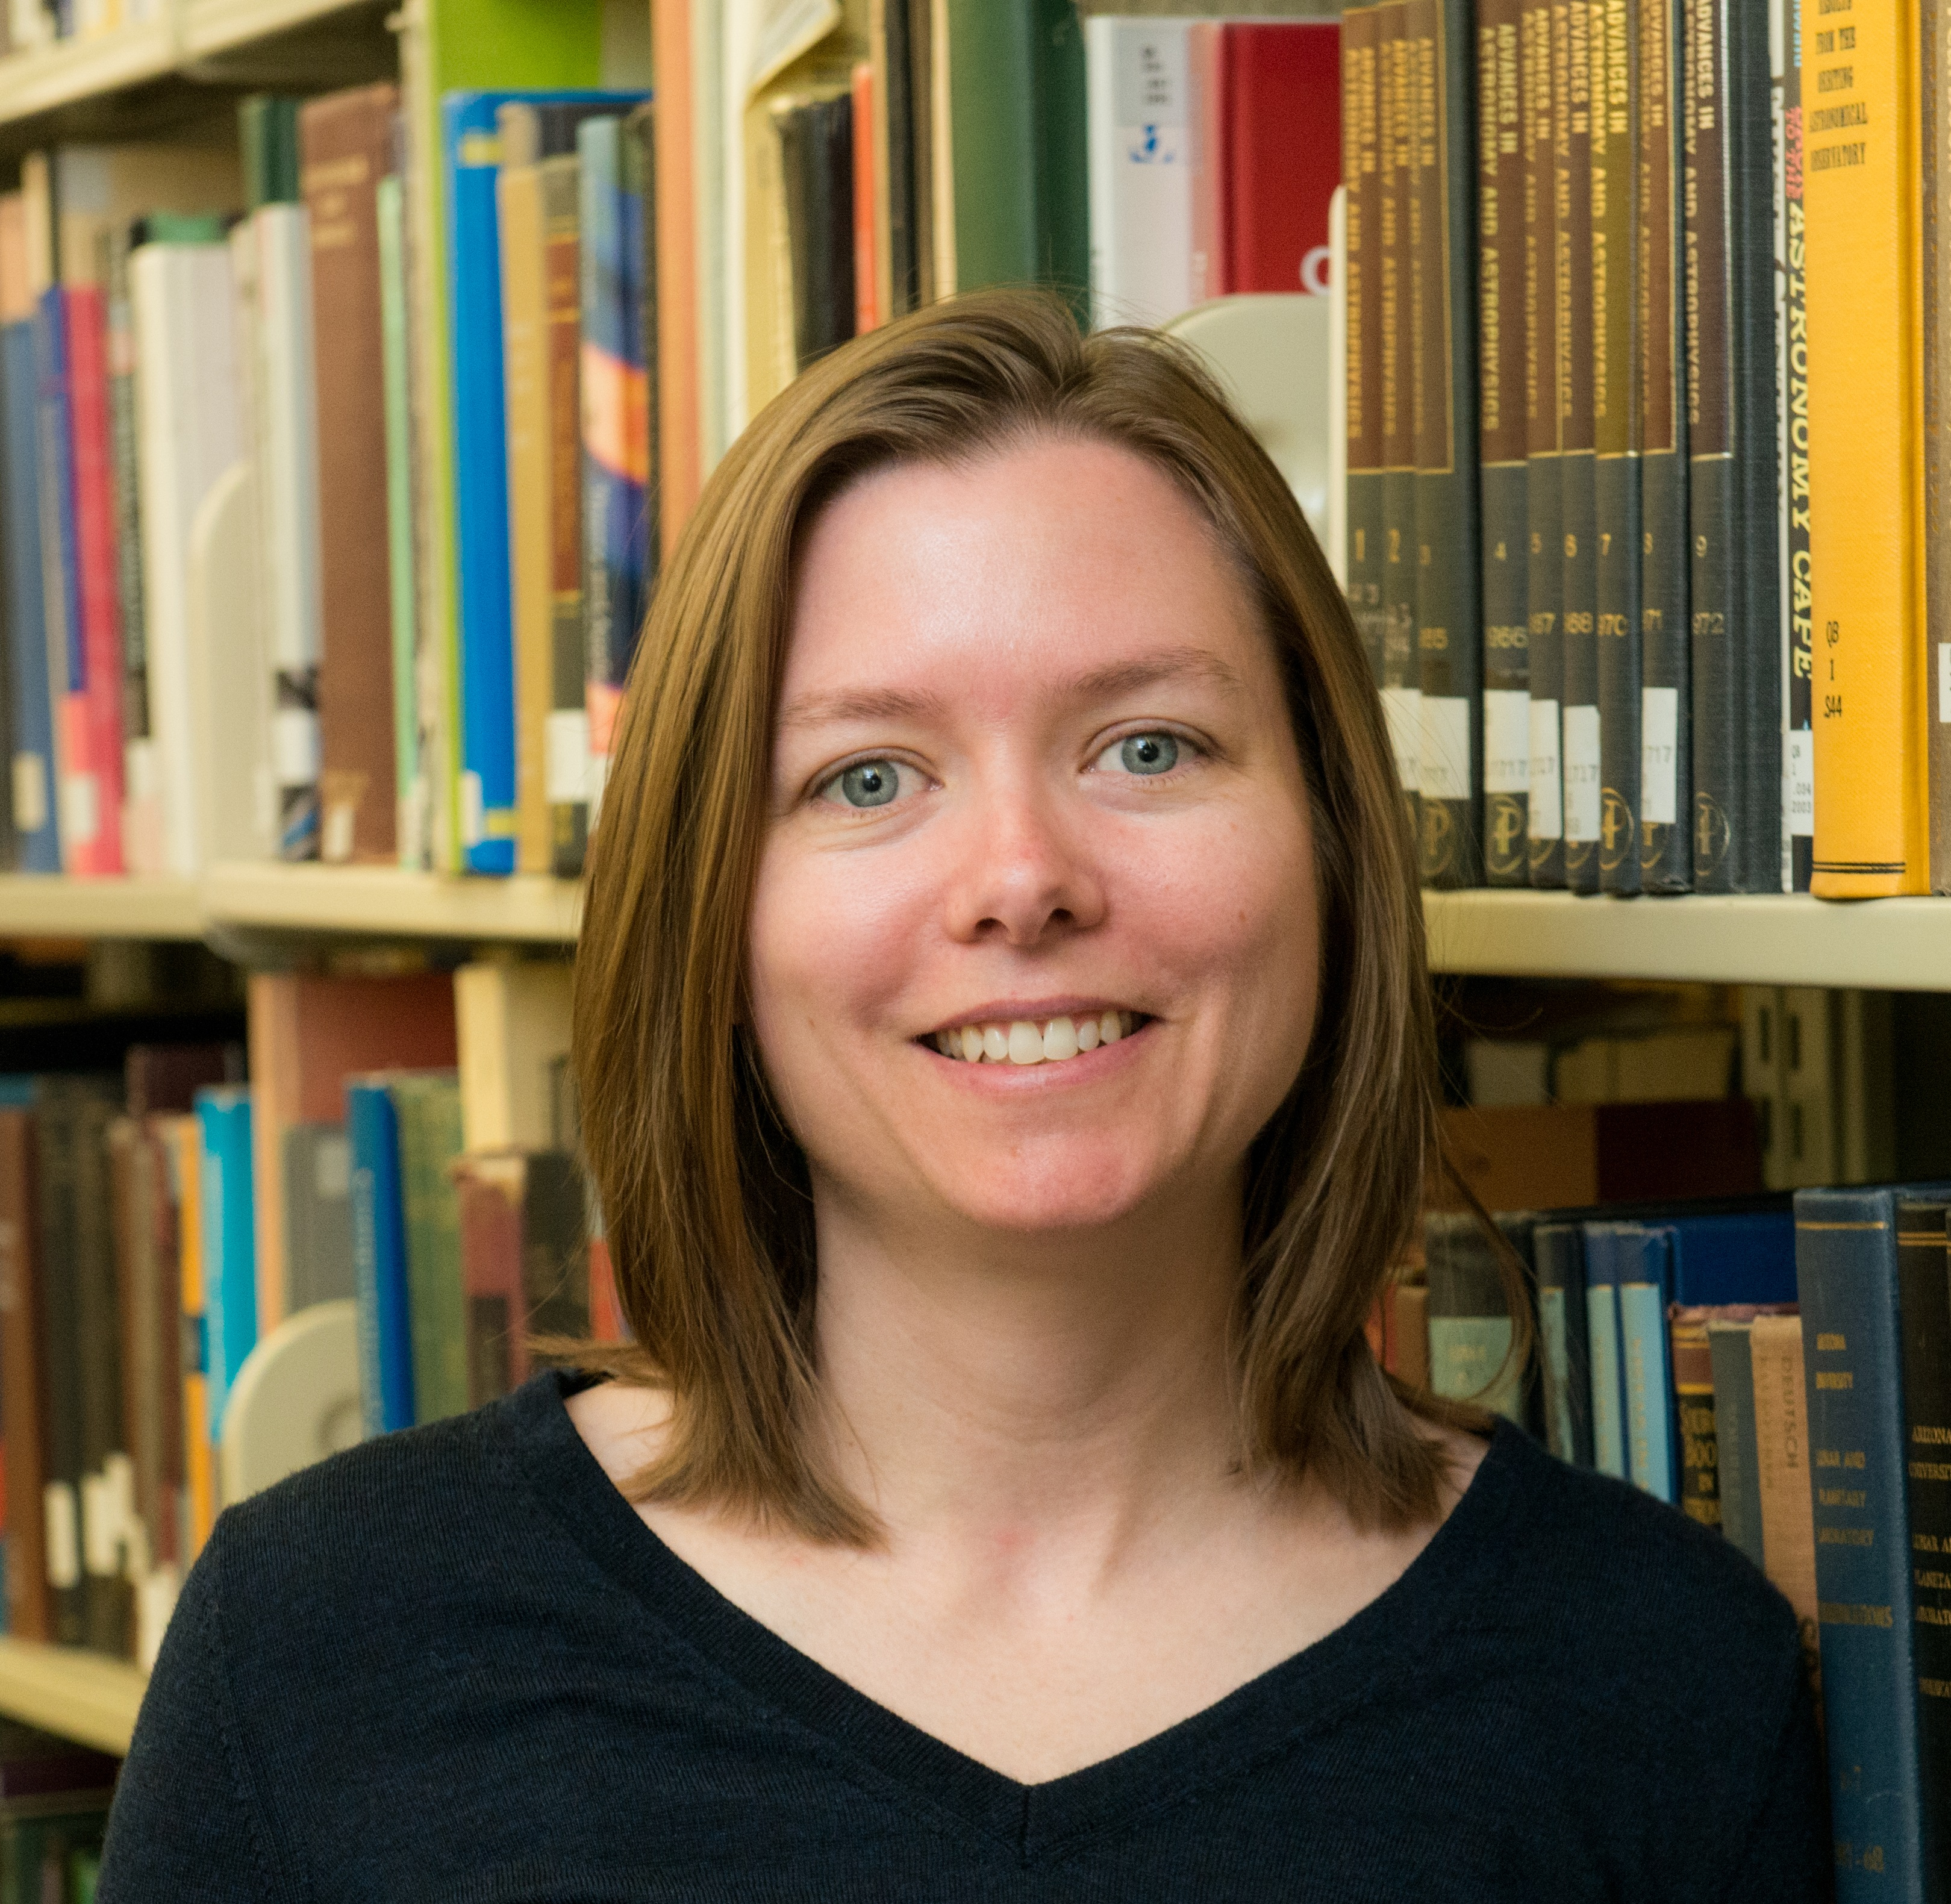 A headshot of a woman standing on the 2nd floor of the Hagerty Library